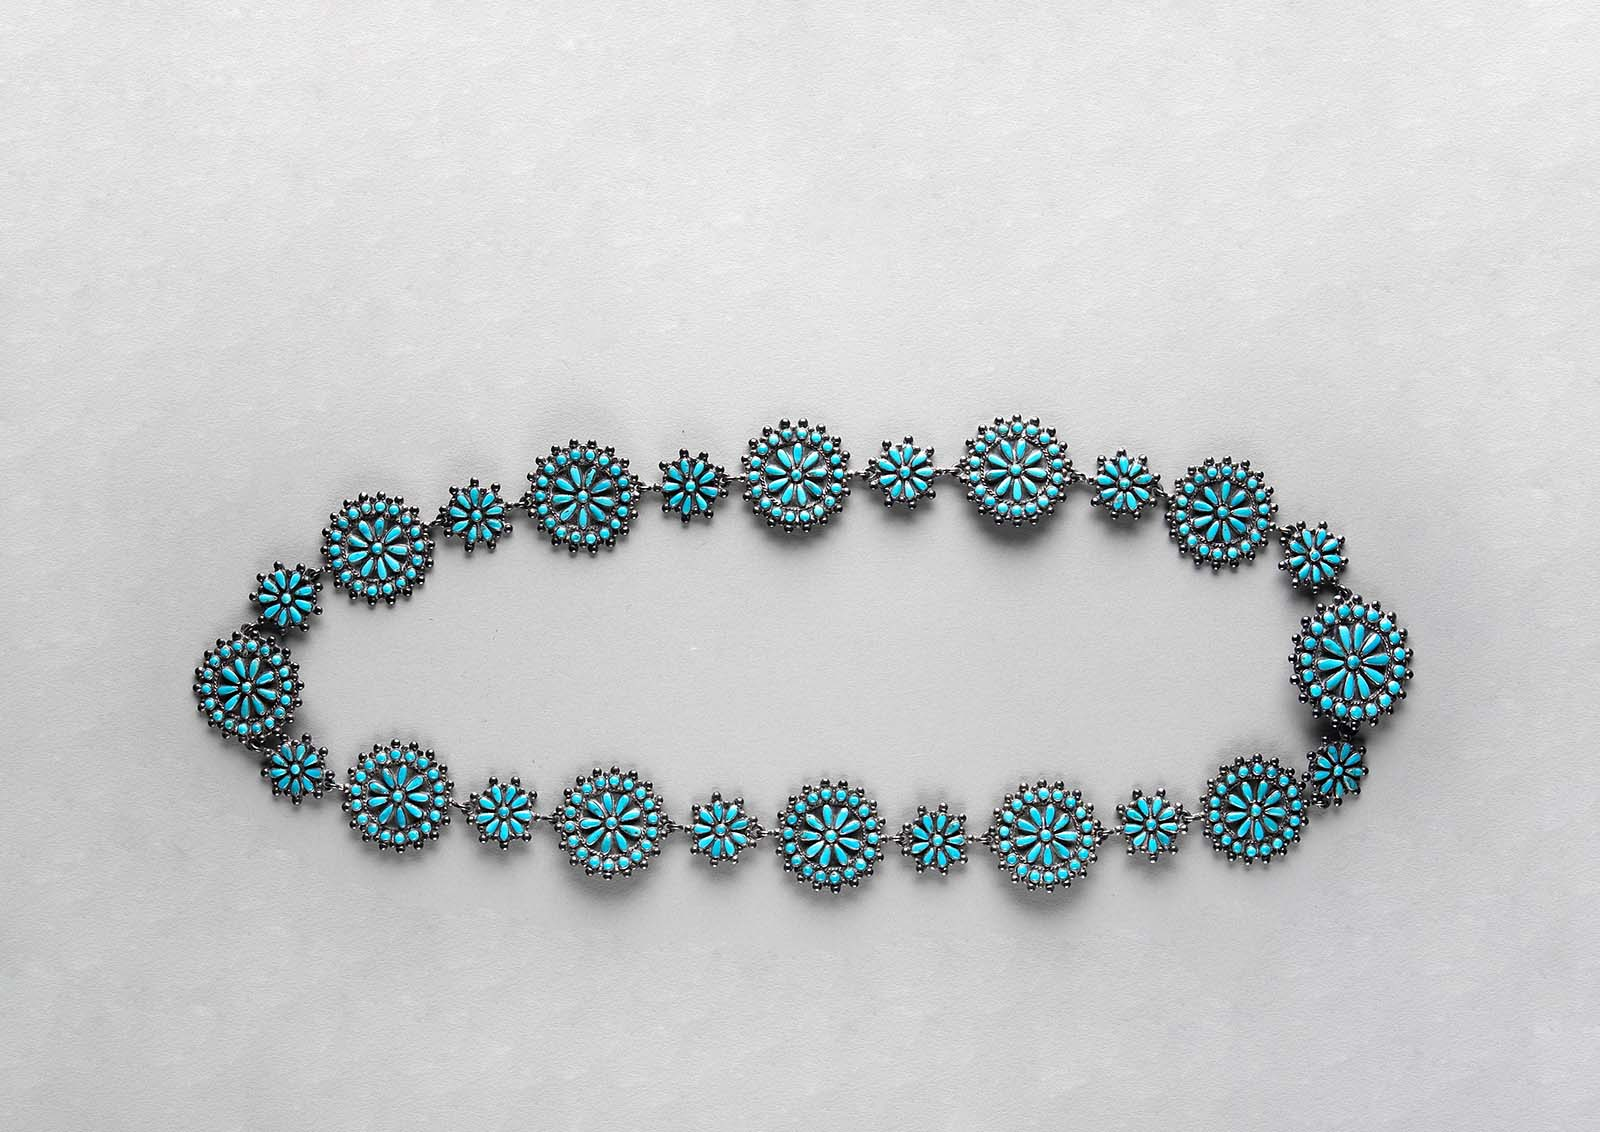 Silver and turquoise belt, ca. 1940s. Gift of Mrs. Frank D. Oastler. NA.203.309